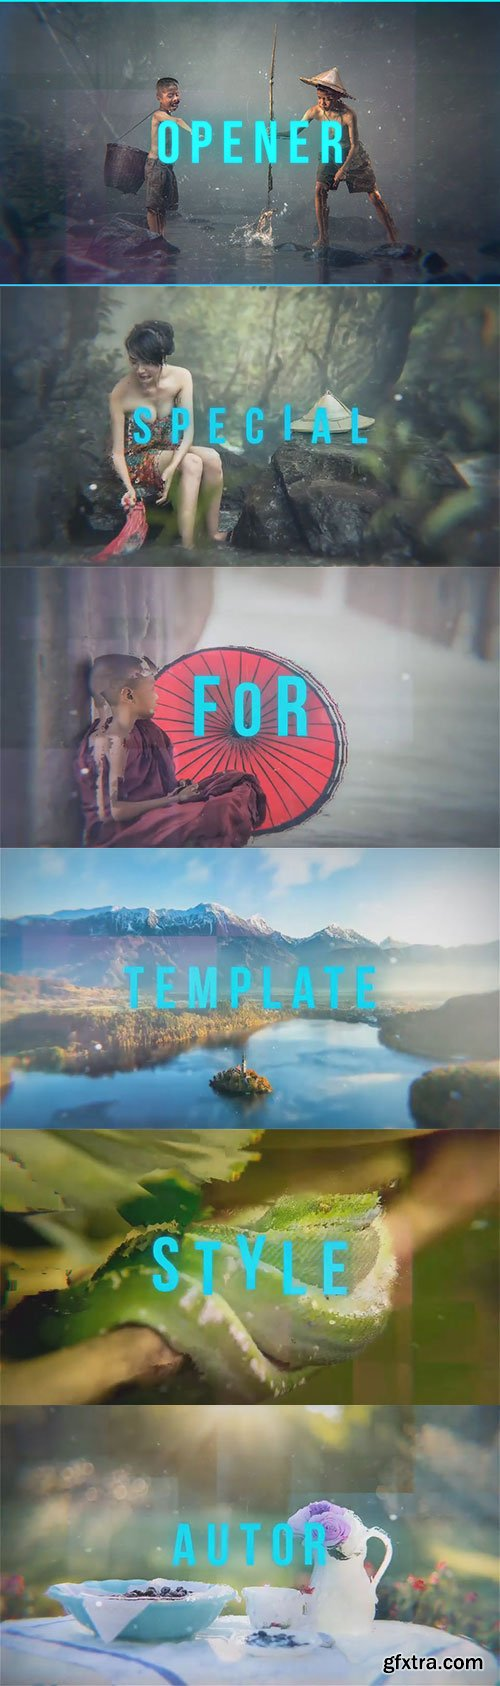 Videohive - Quickly Stomp Opener - 20254857